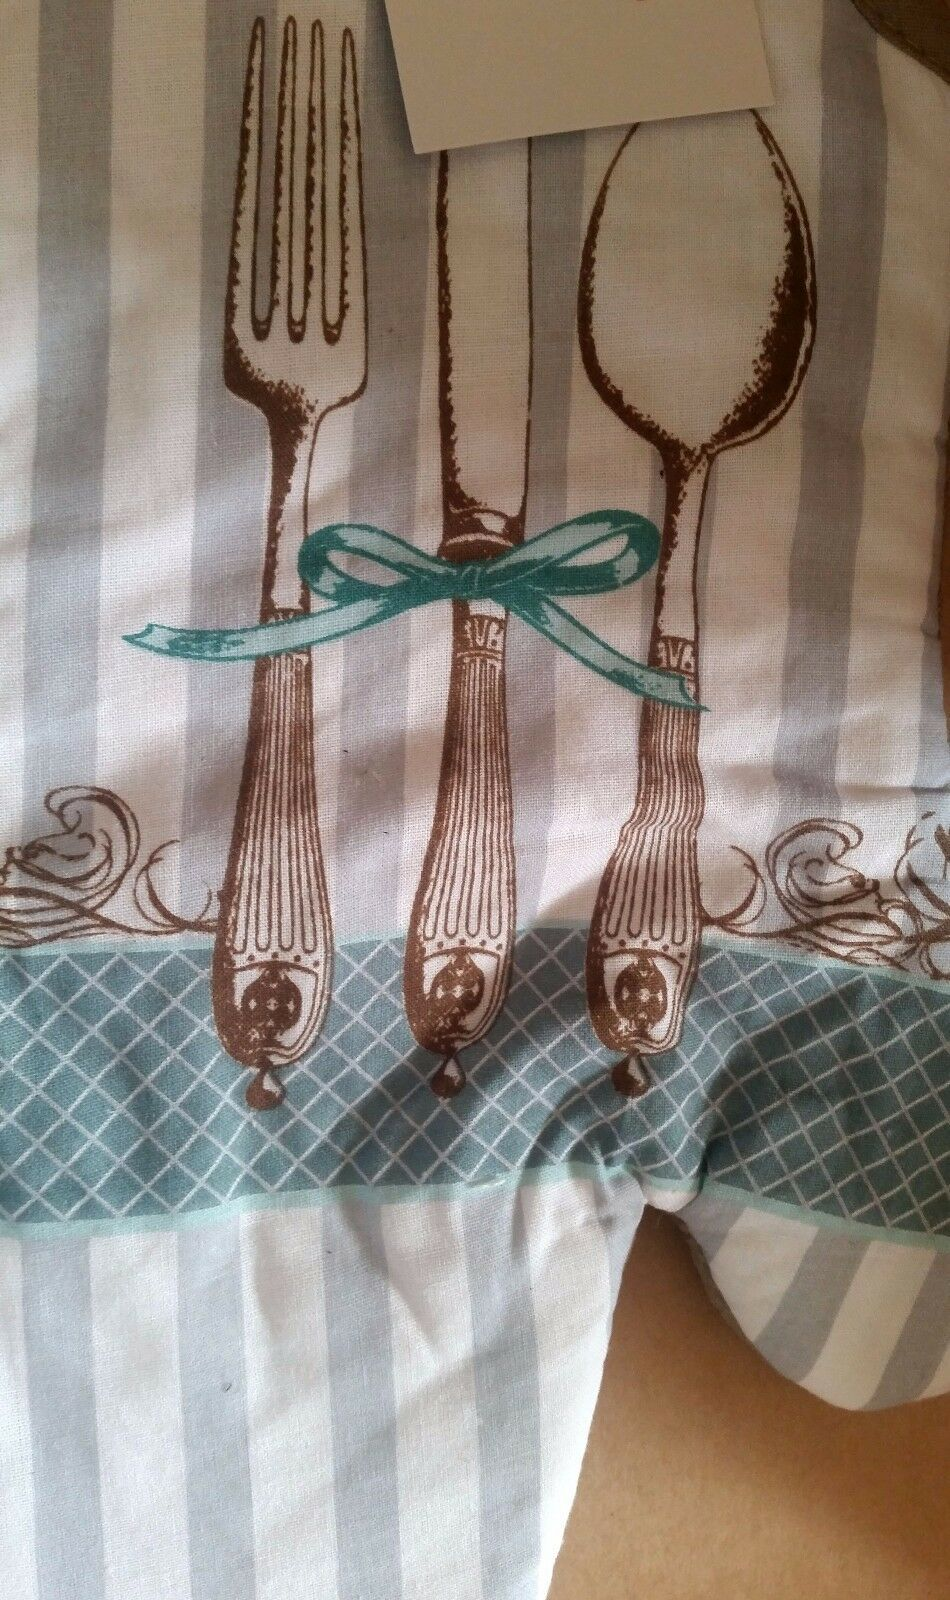 """Fabric Printed 12"""" Jumbo Oven Mitt, SILVERWARE in BOW, SPOON, FORK, KNIFE by AM"""